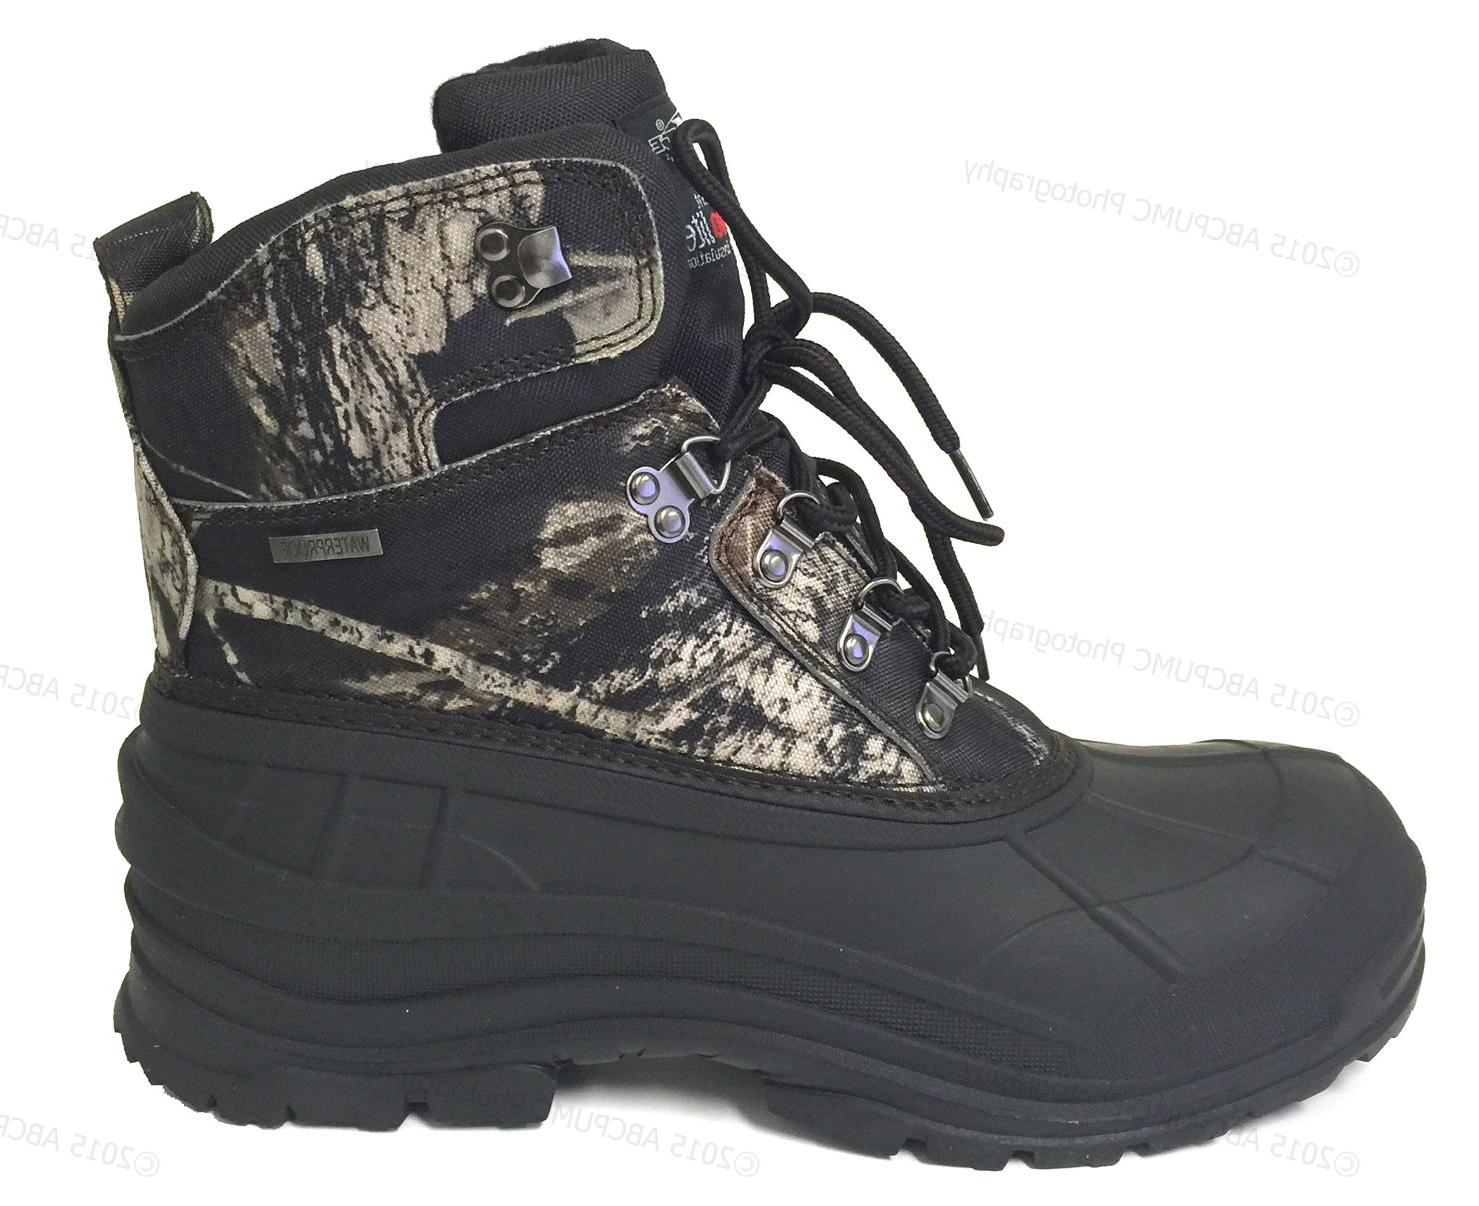 Mens Camouflage Waterproof Insulated Thermolite